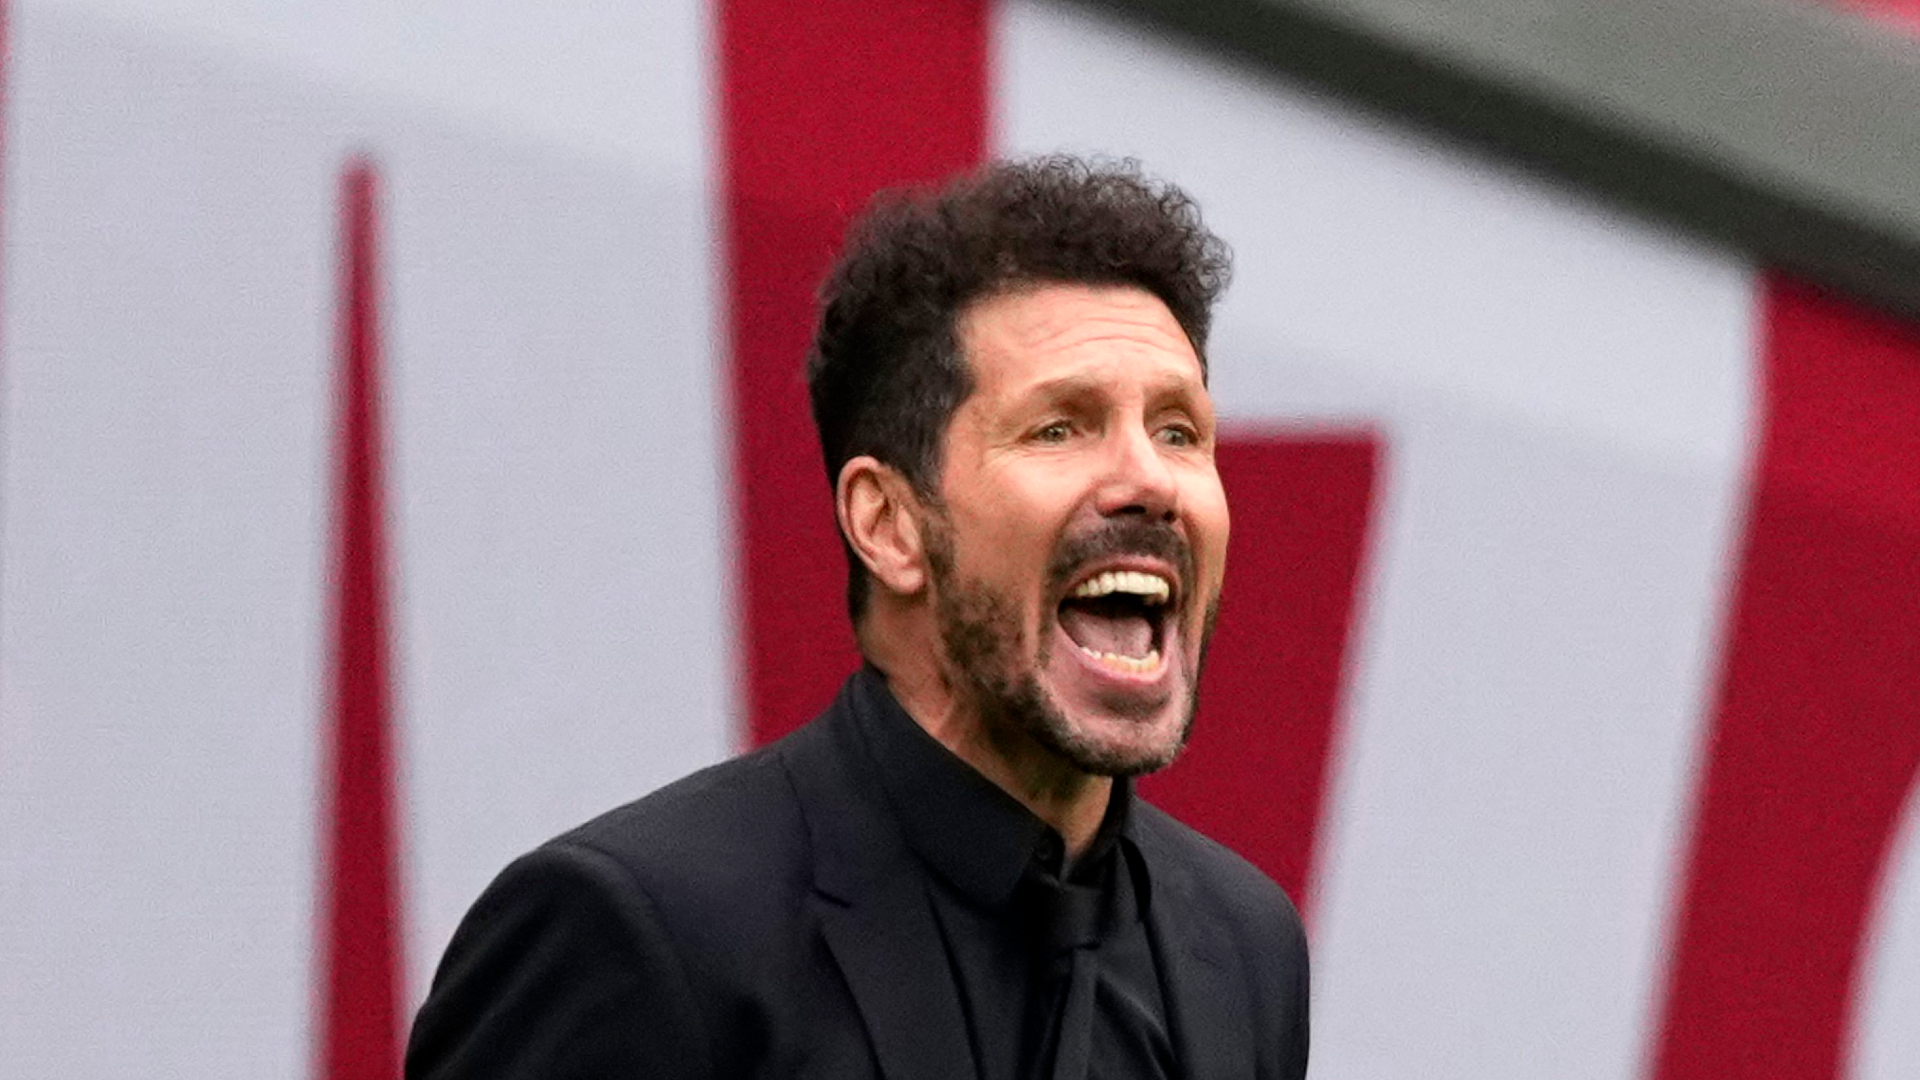 Simeone overtakes Aragones for the most wins ever by an Atletico Madrid boss